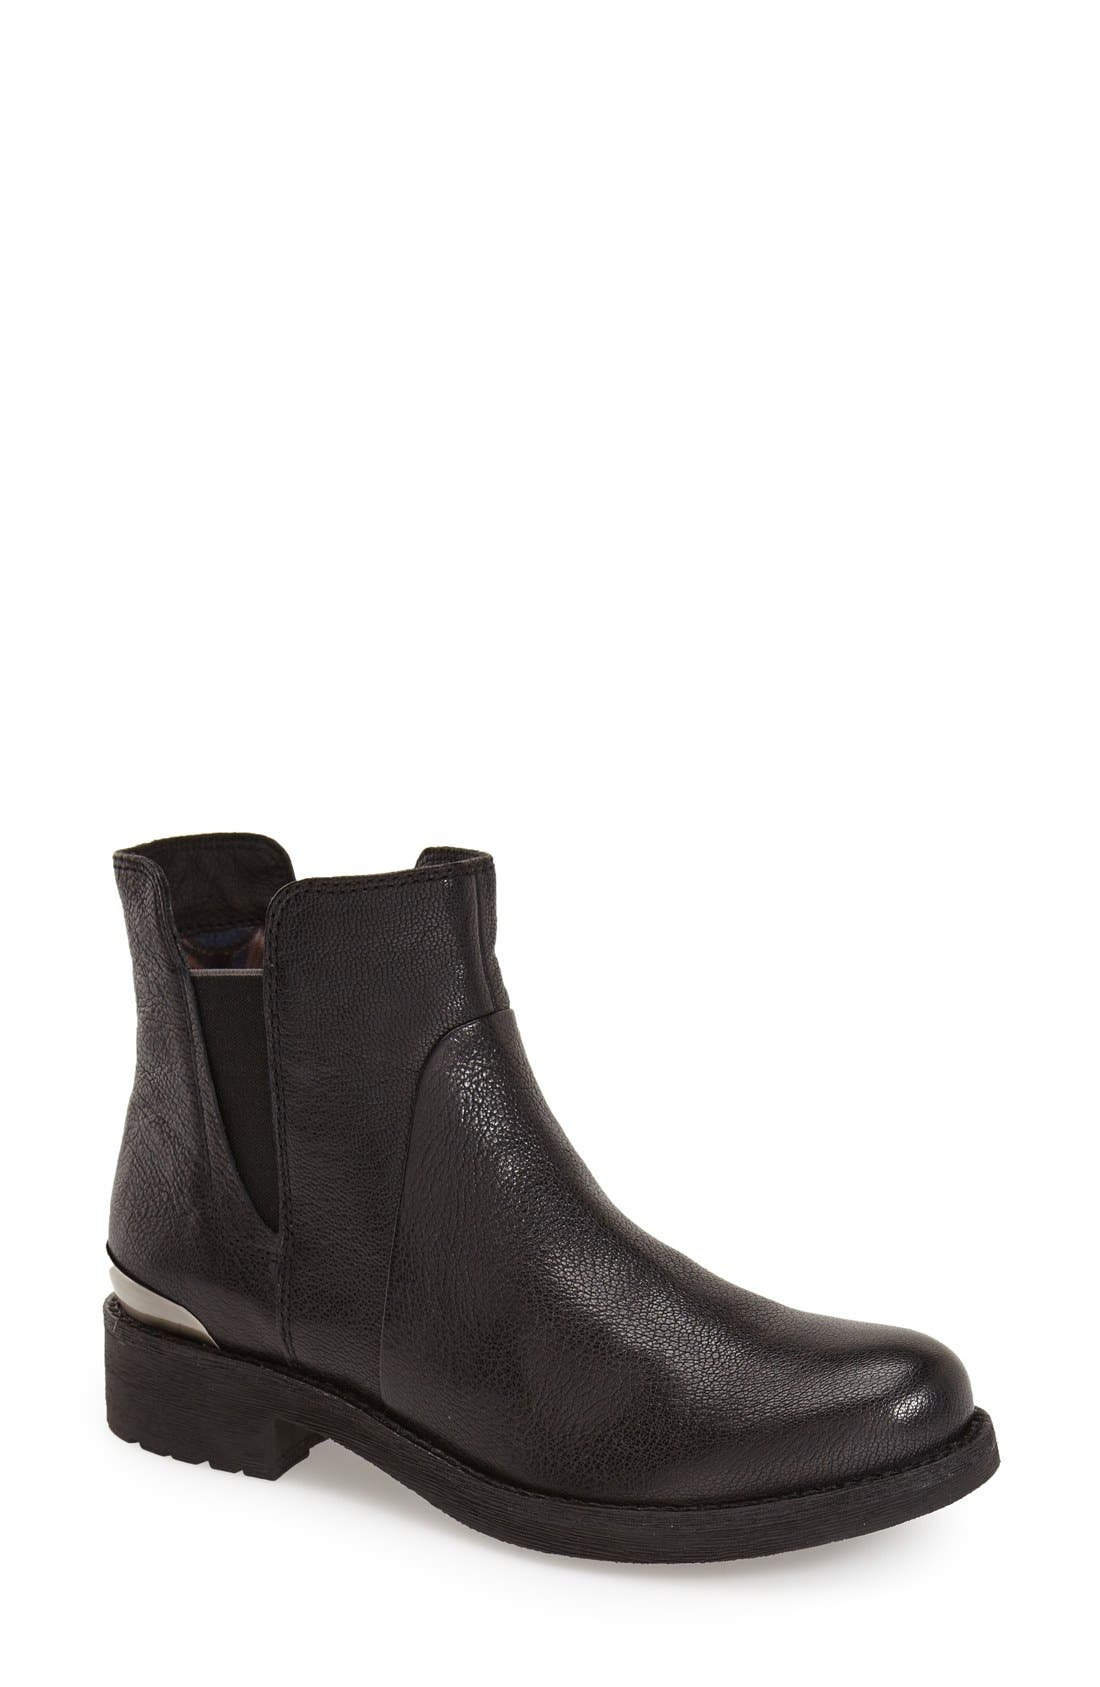 'New Virna' Chelsea Boot,                             Main thumbnail 1, color,                             BLACK SMOOTH LEATHER